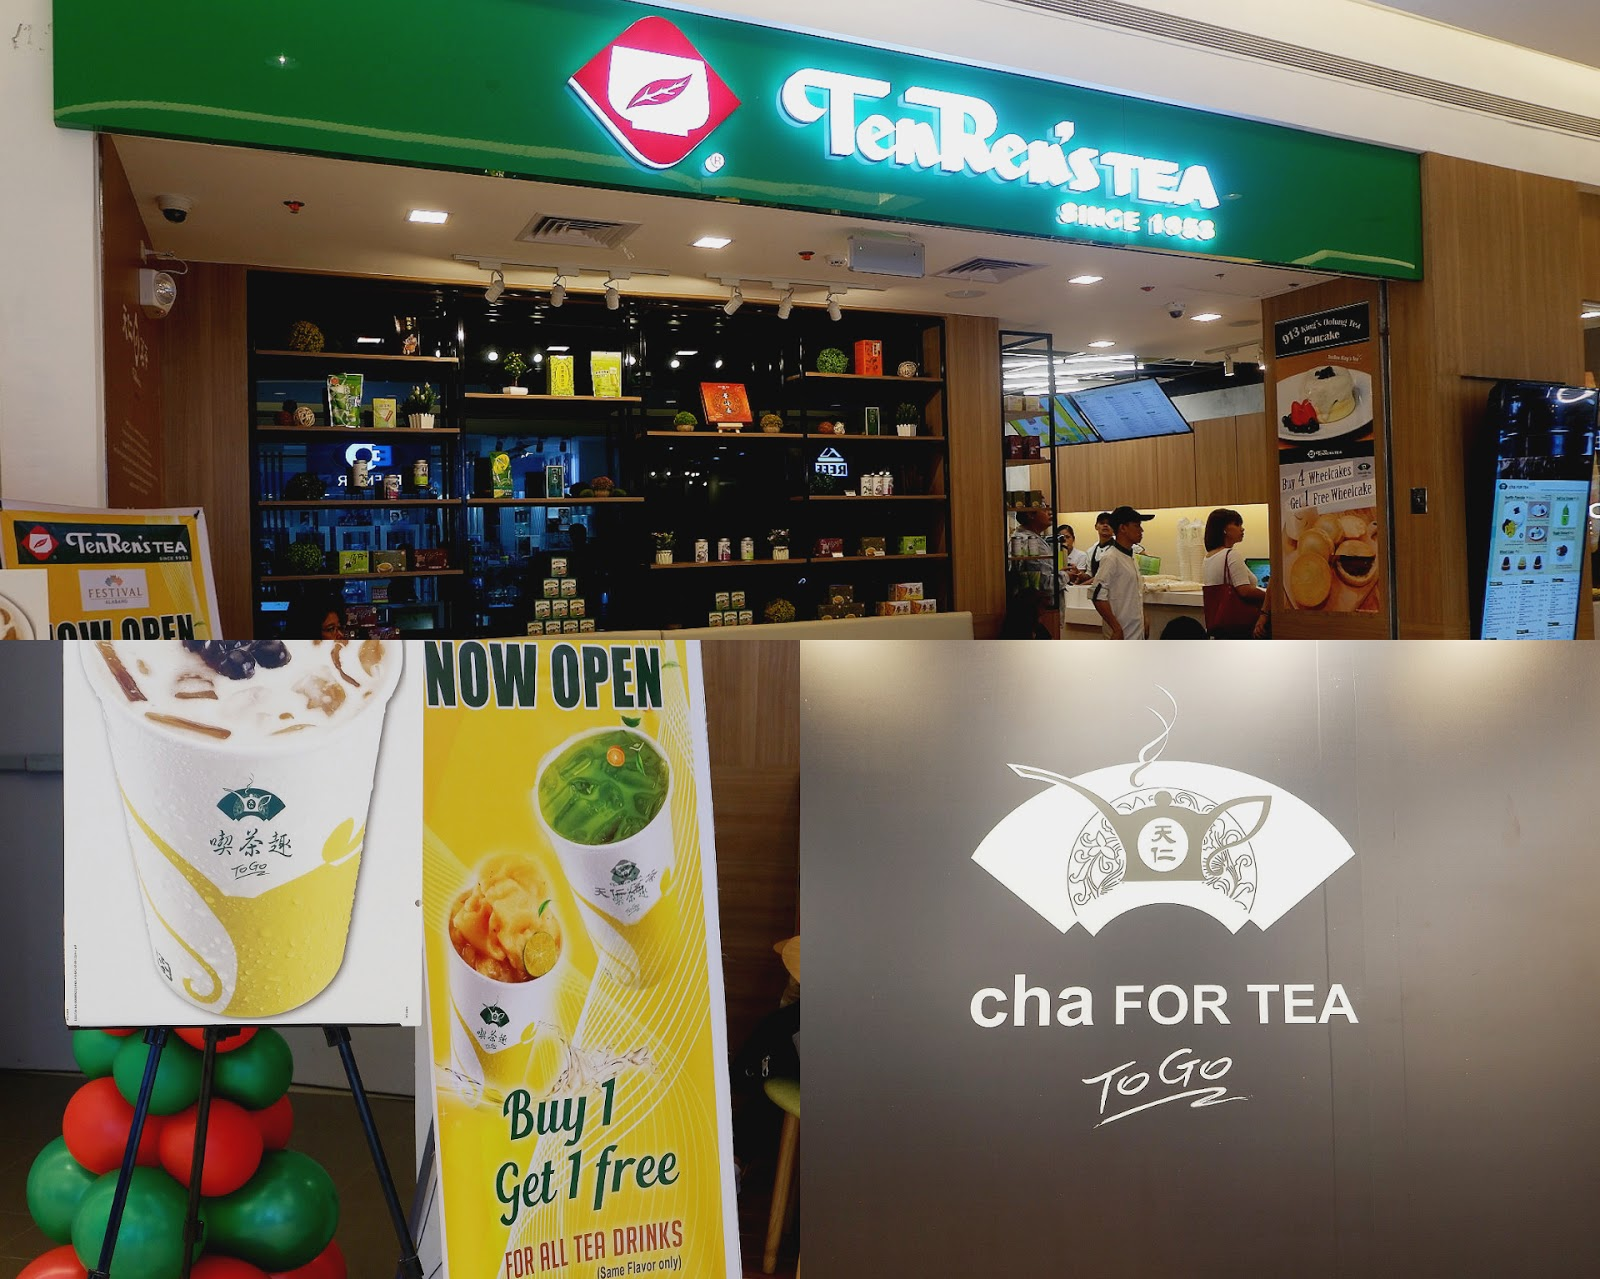 ten ren tea opens their 3rd branch in the Philippines